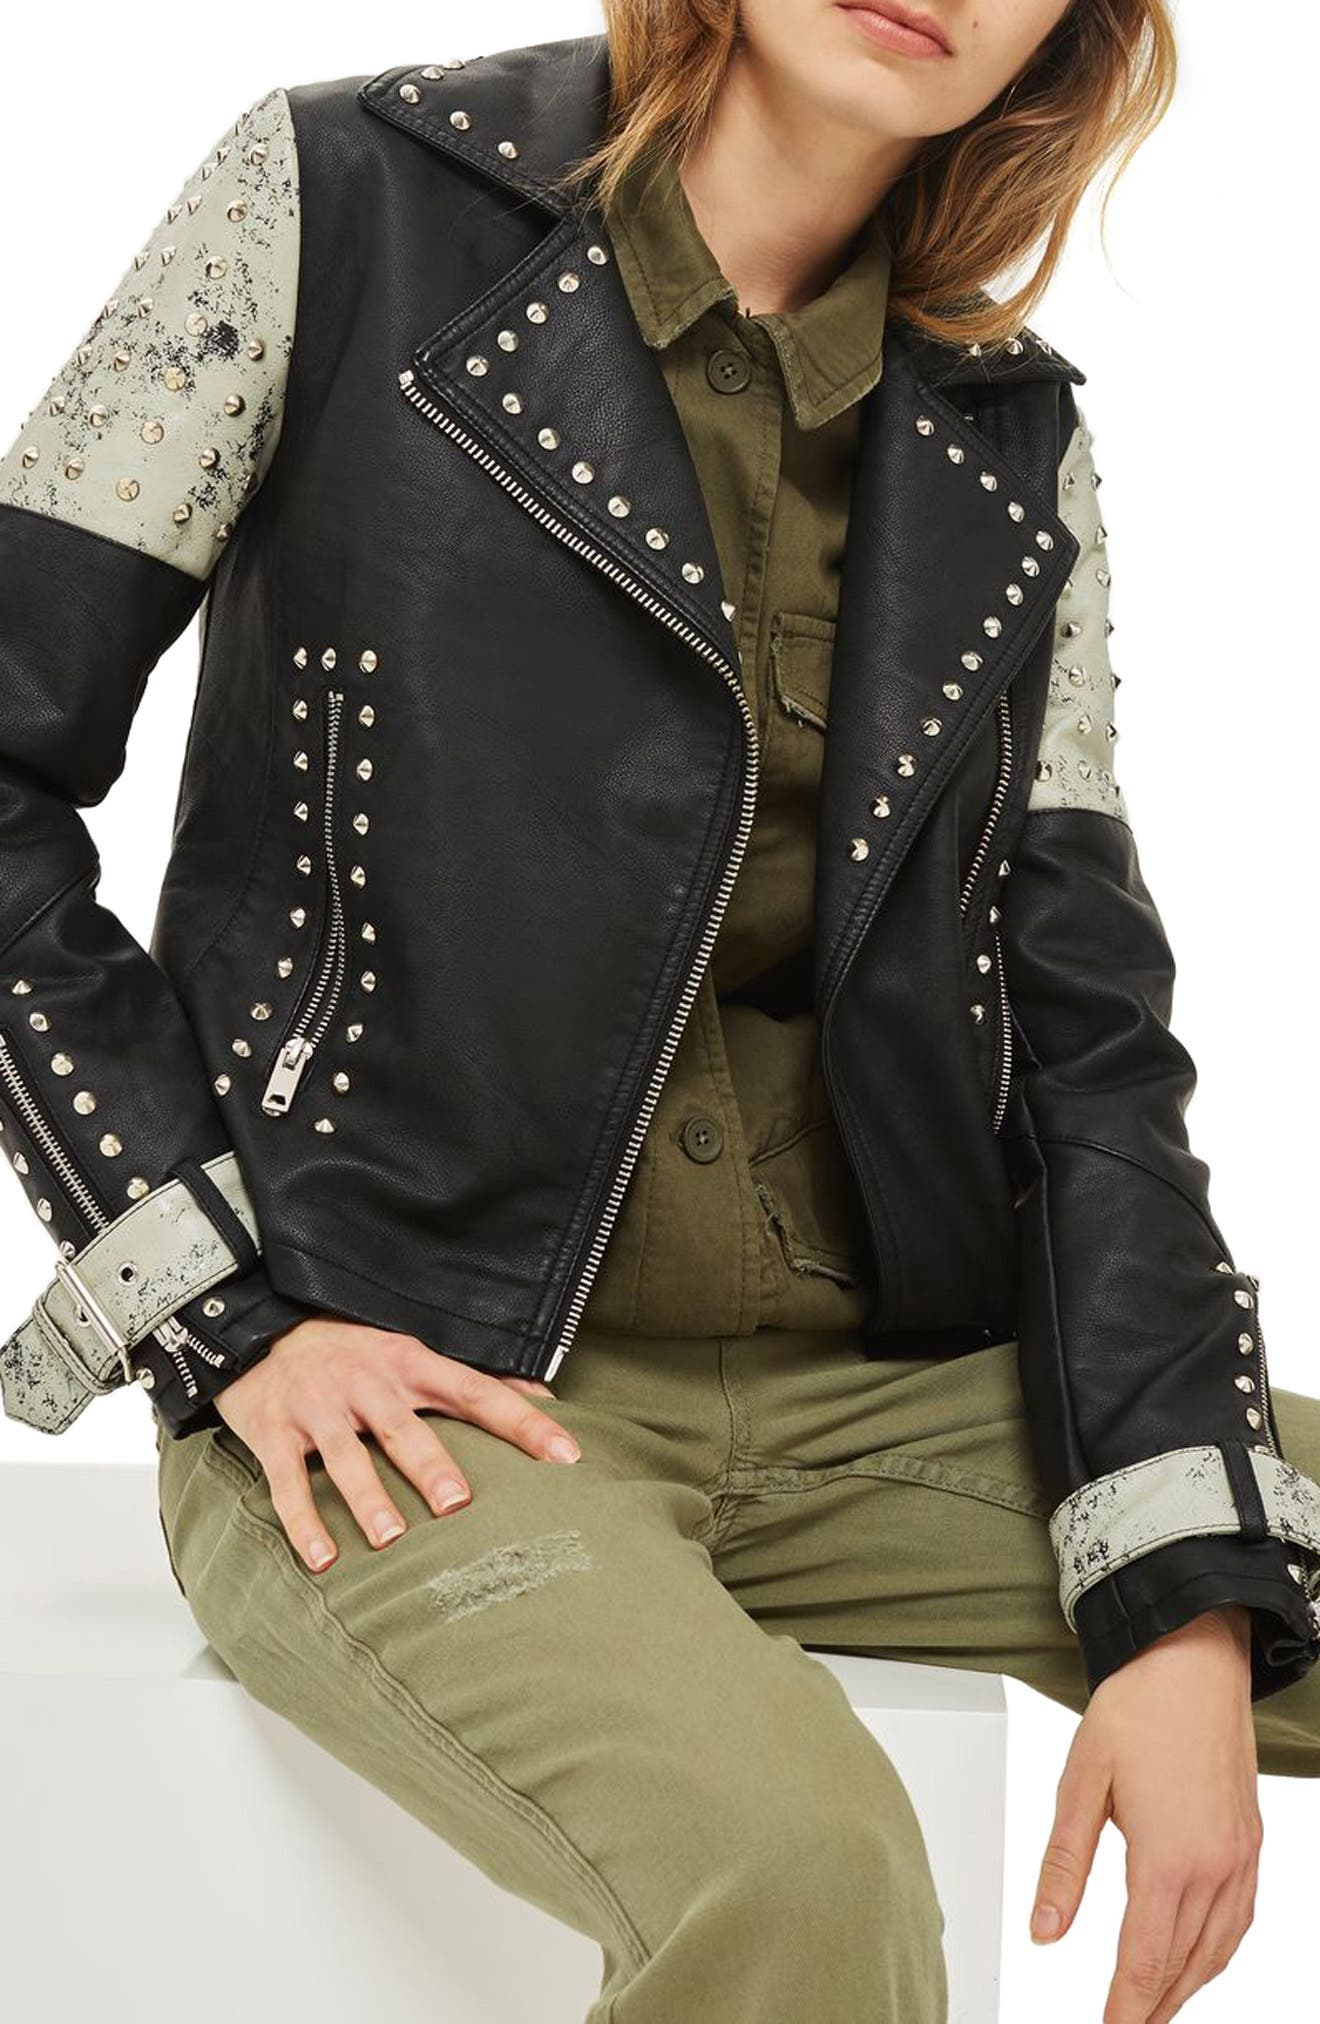 Maddox Painted & Studded Faux Leather Jacket,                             Main thumbnail 1, color,                             001